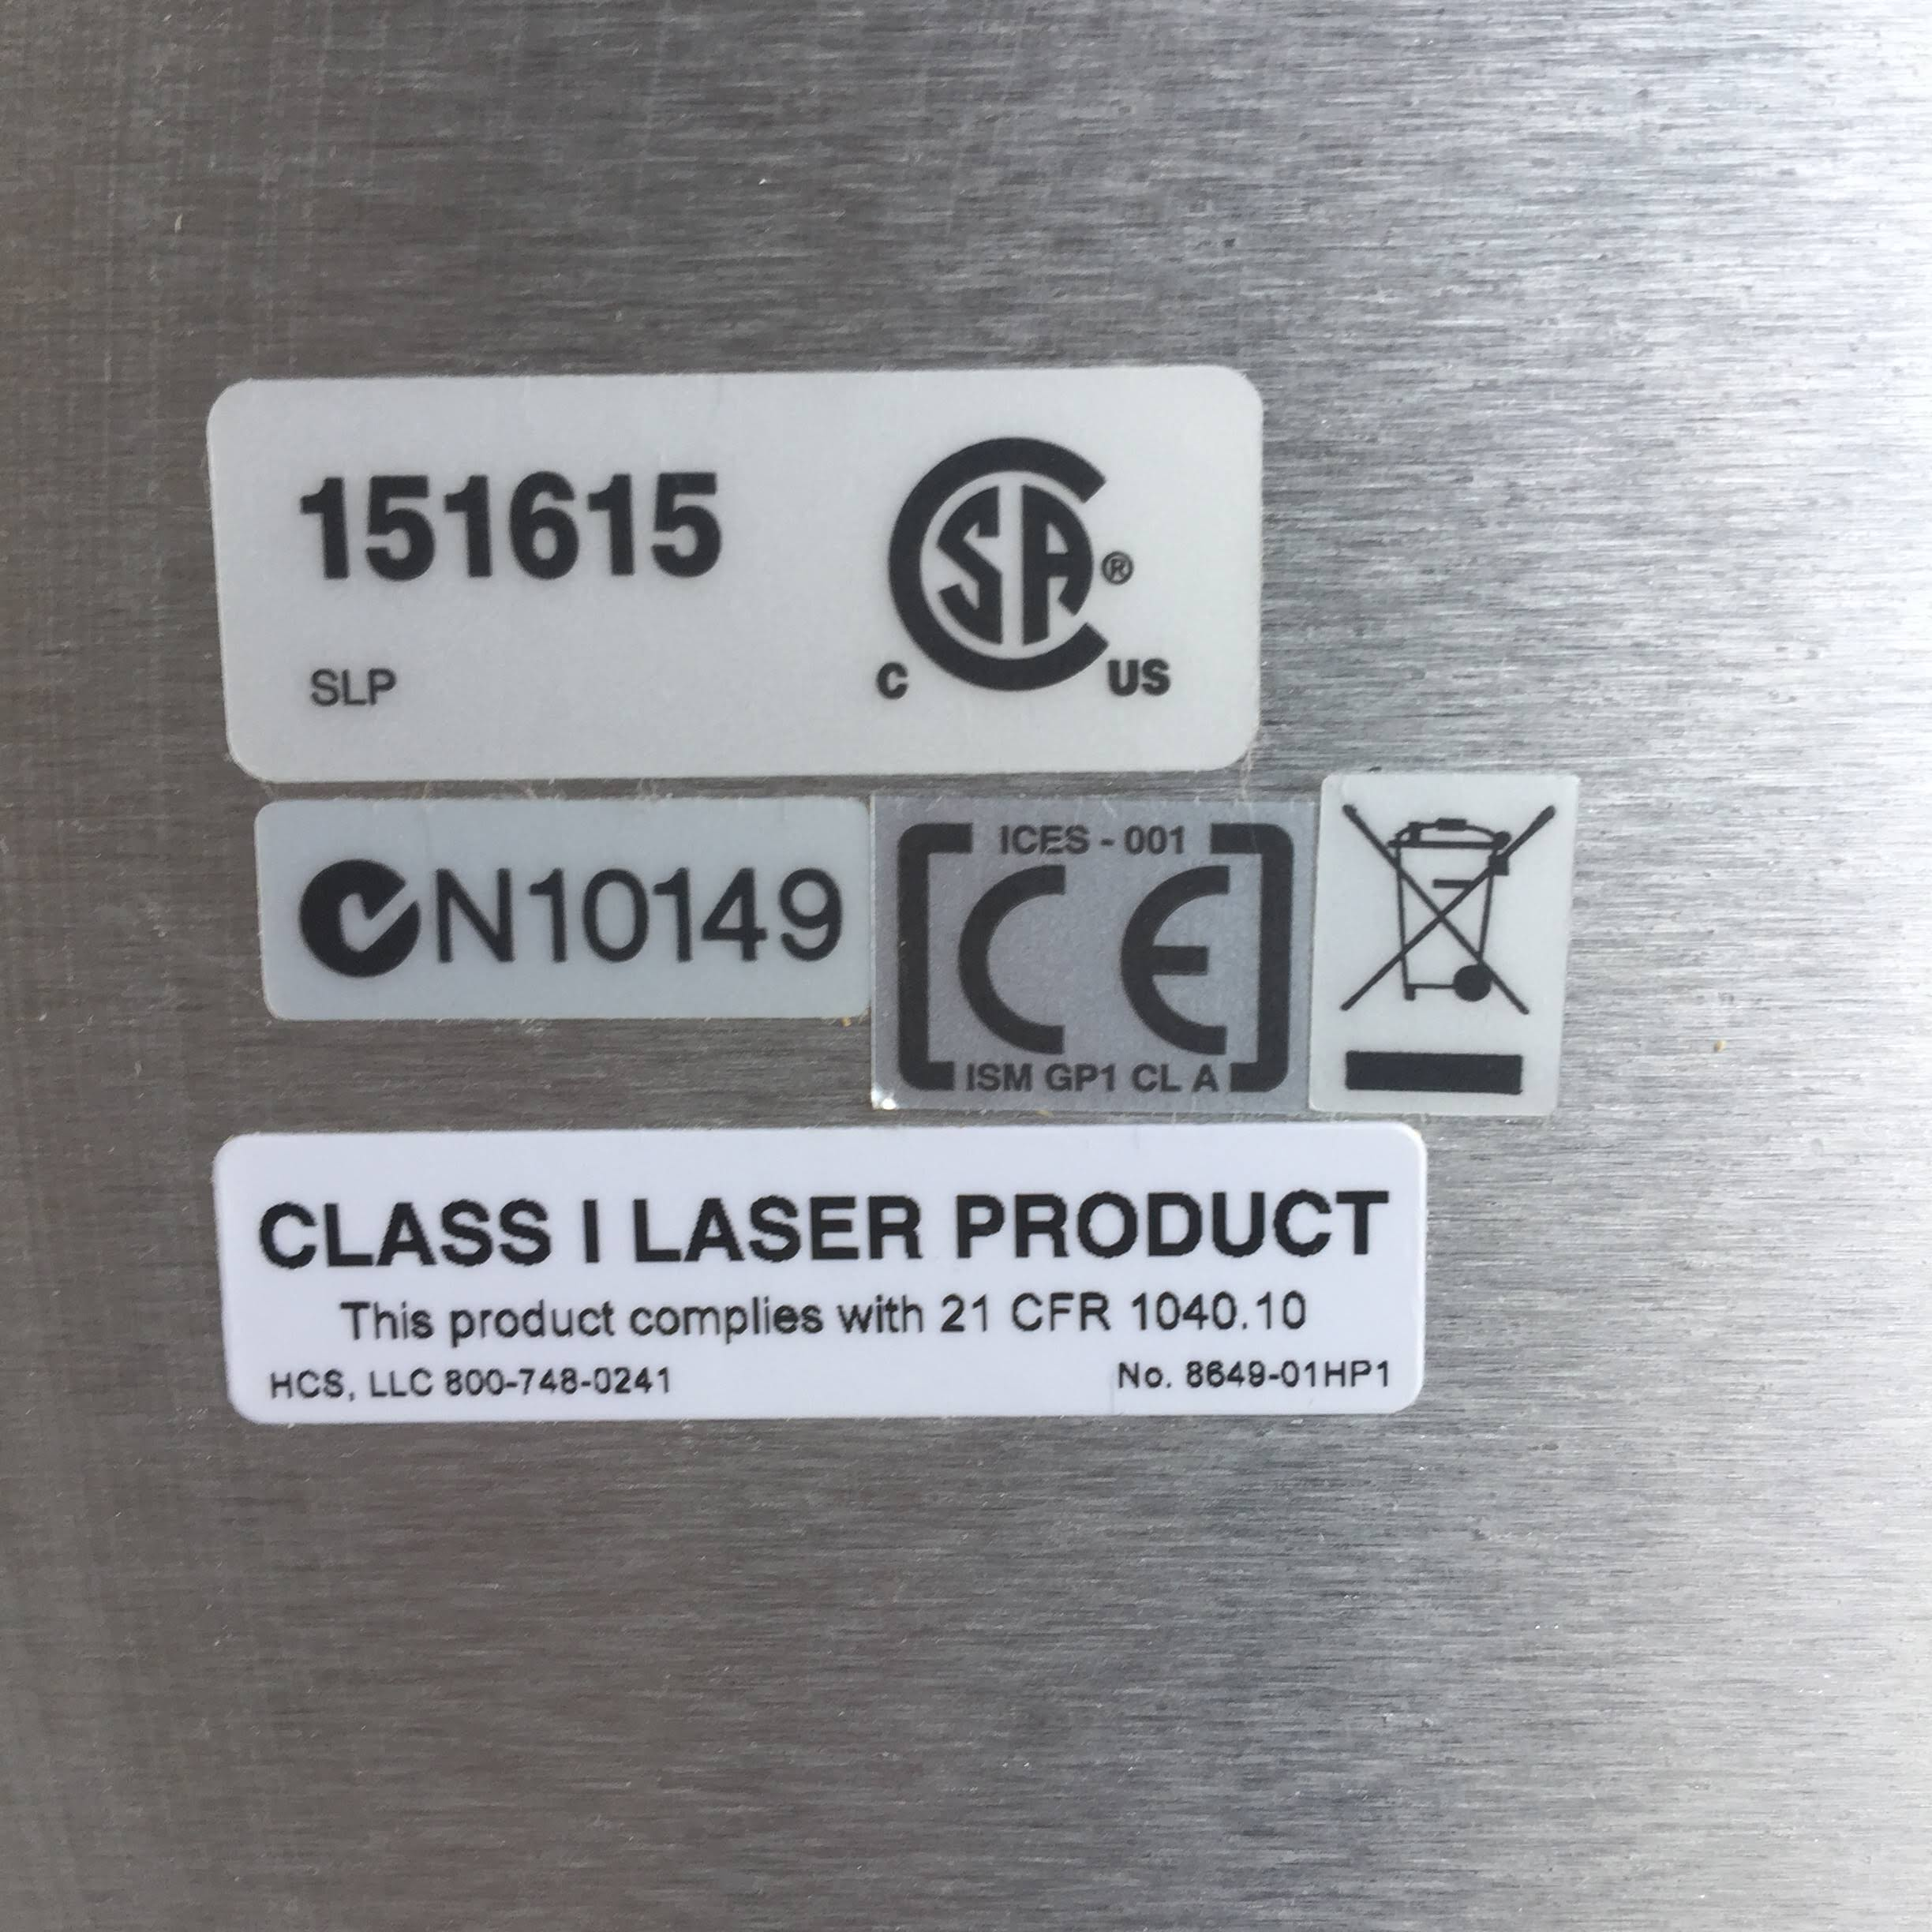 Class 1 Laser Product